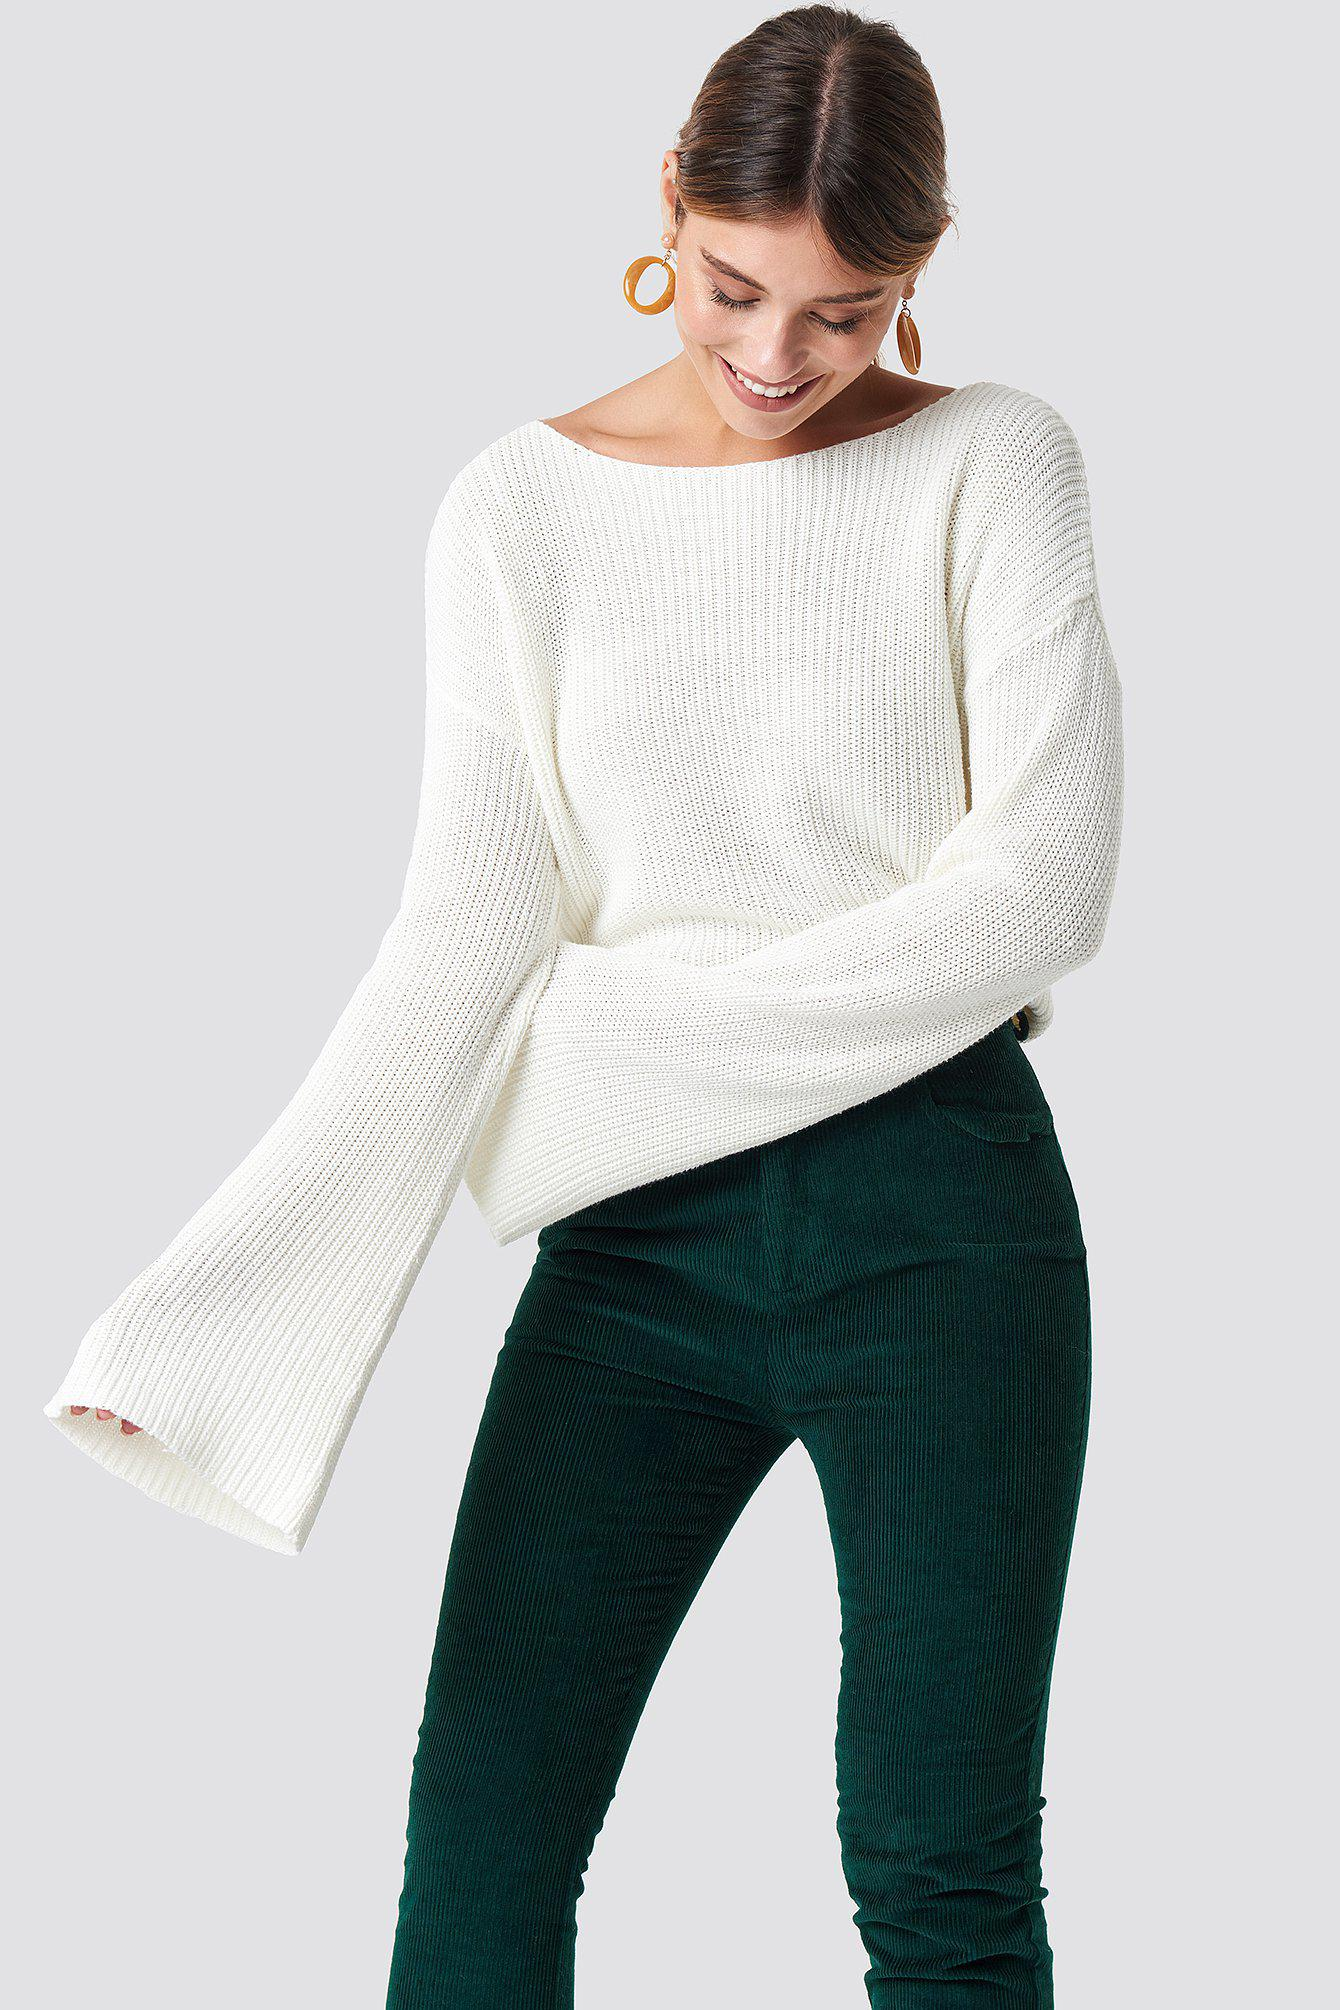 Knitted White Kd Na Lyst Sweater In Long Cropped Sleeve xXwpOqg0